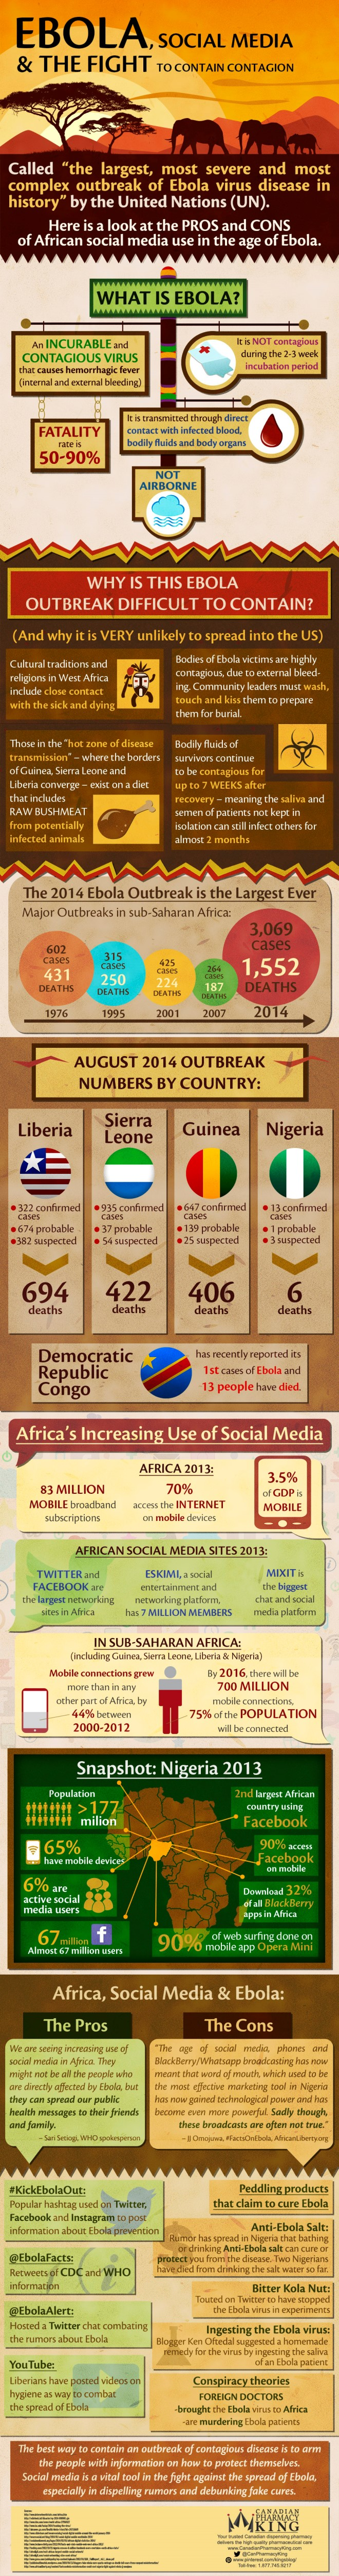 Ebola, Social Media & The Fight To Contain Contagion